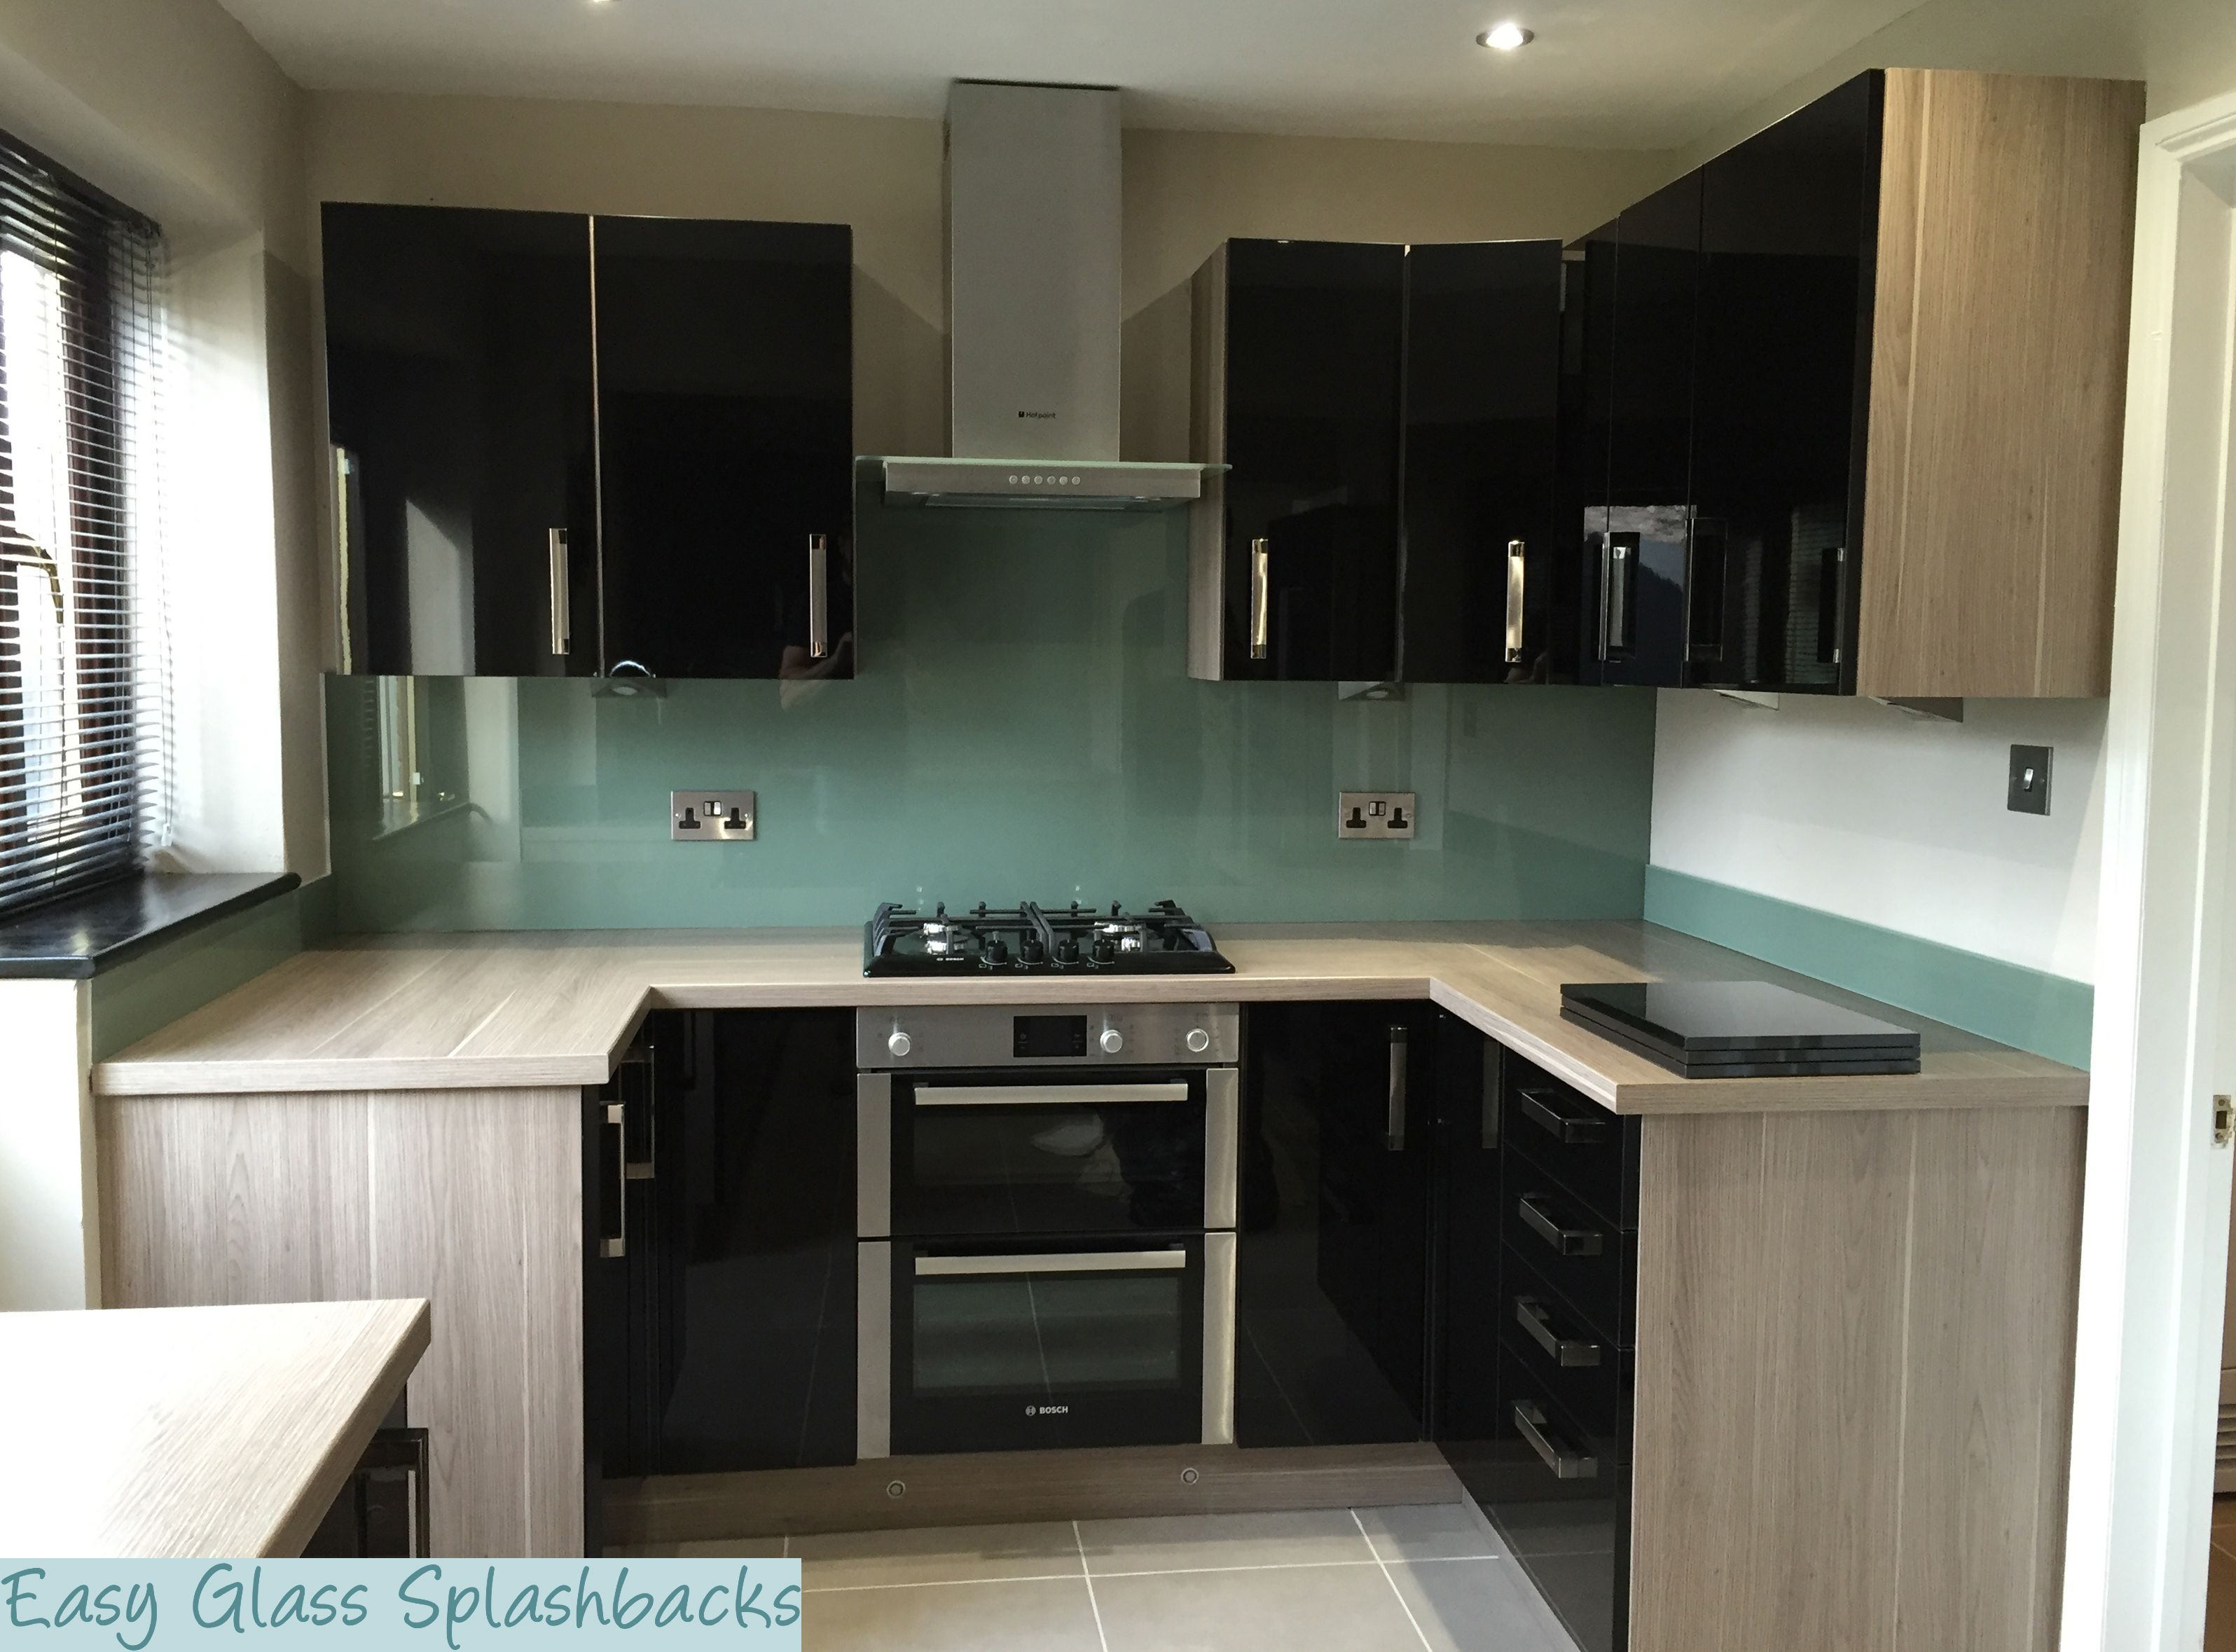 Dulux Tuscan Olive Coloured Glass Splashback In A Black Kitchen With